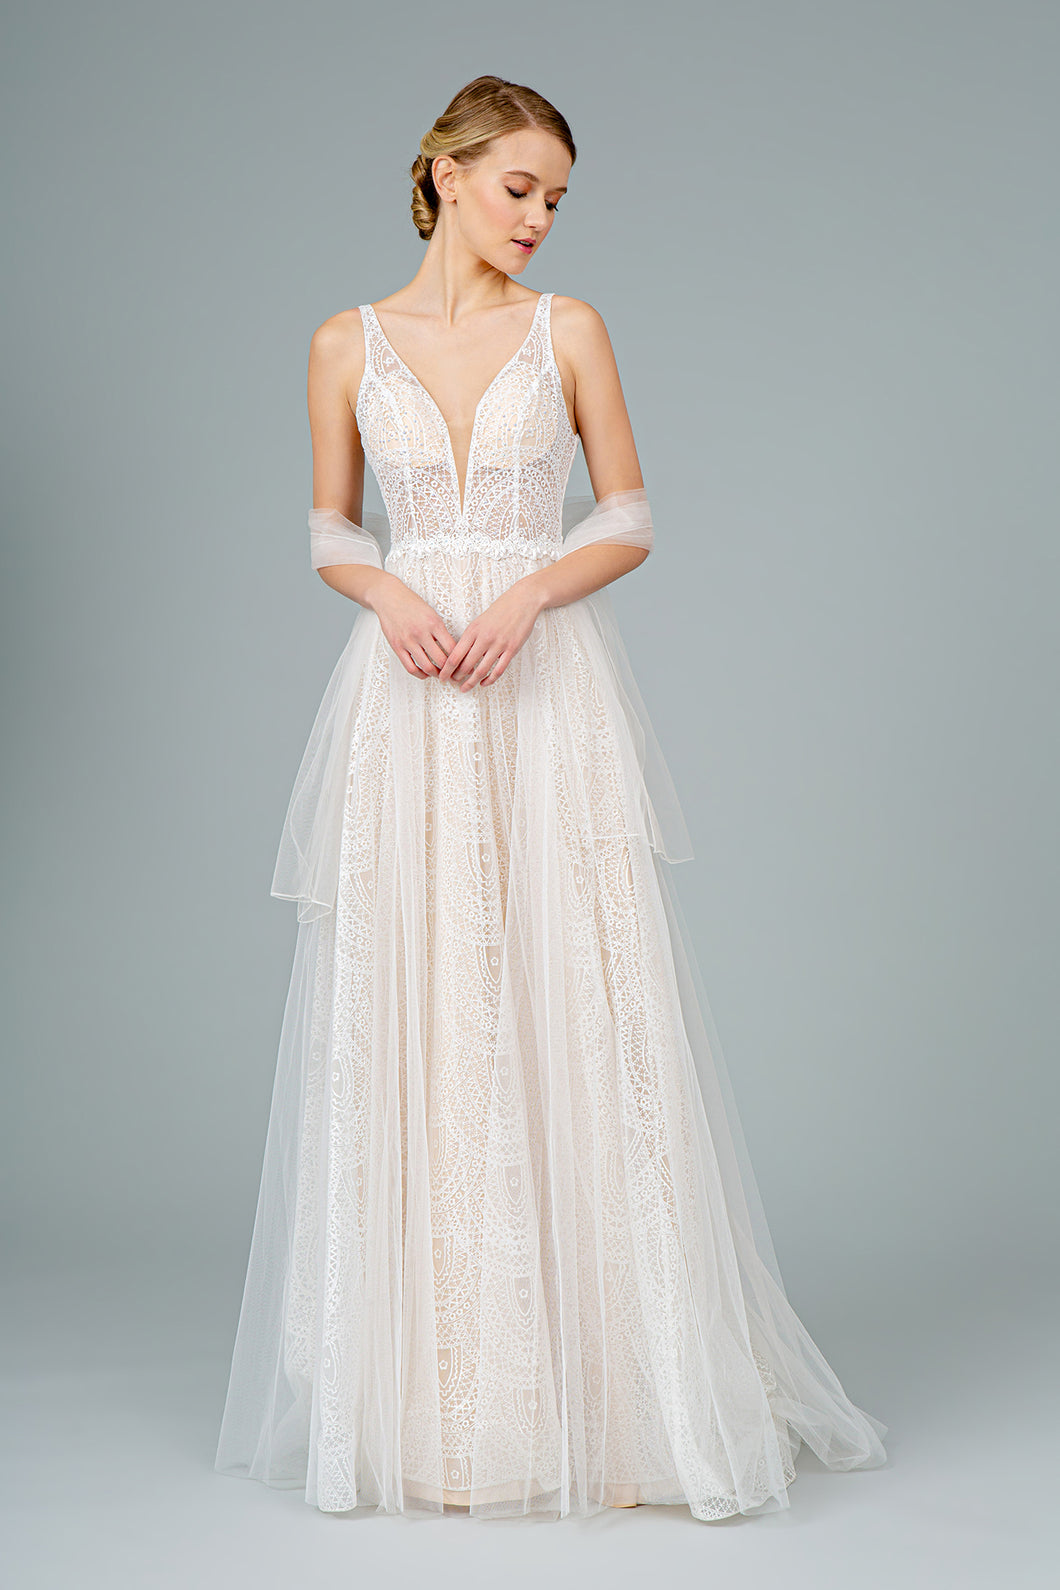 Rochelle Wedding Dress Ivory Art Deco Gown G2994EE-Ivory  SAMPLE IN STORE